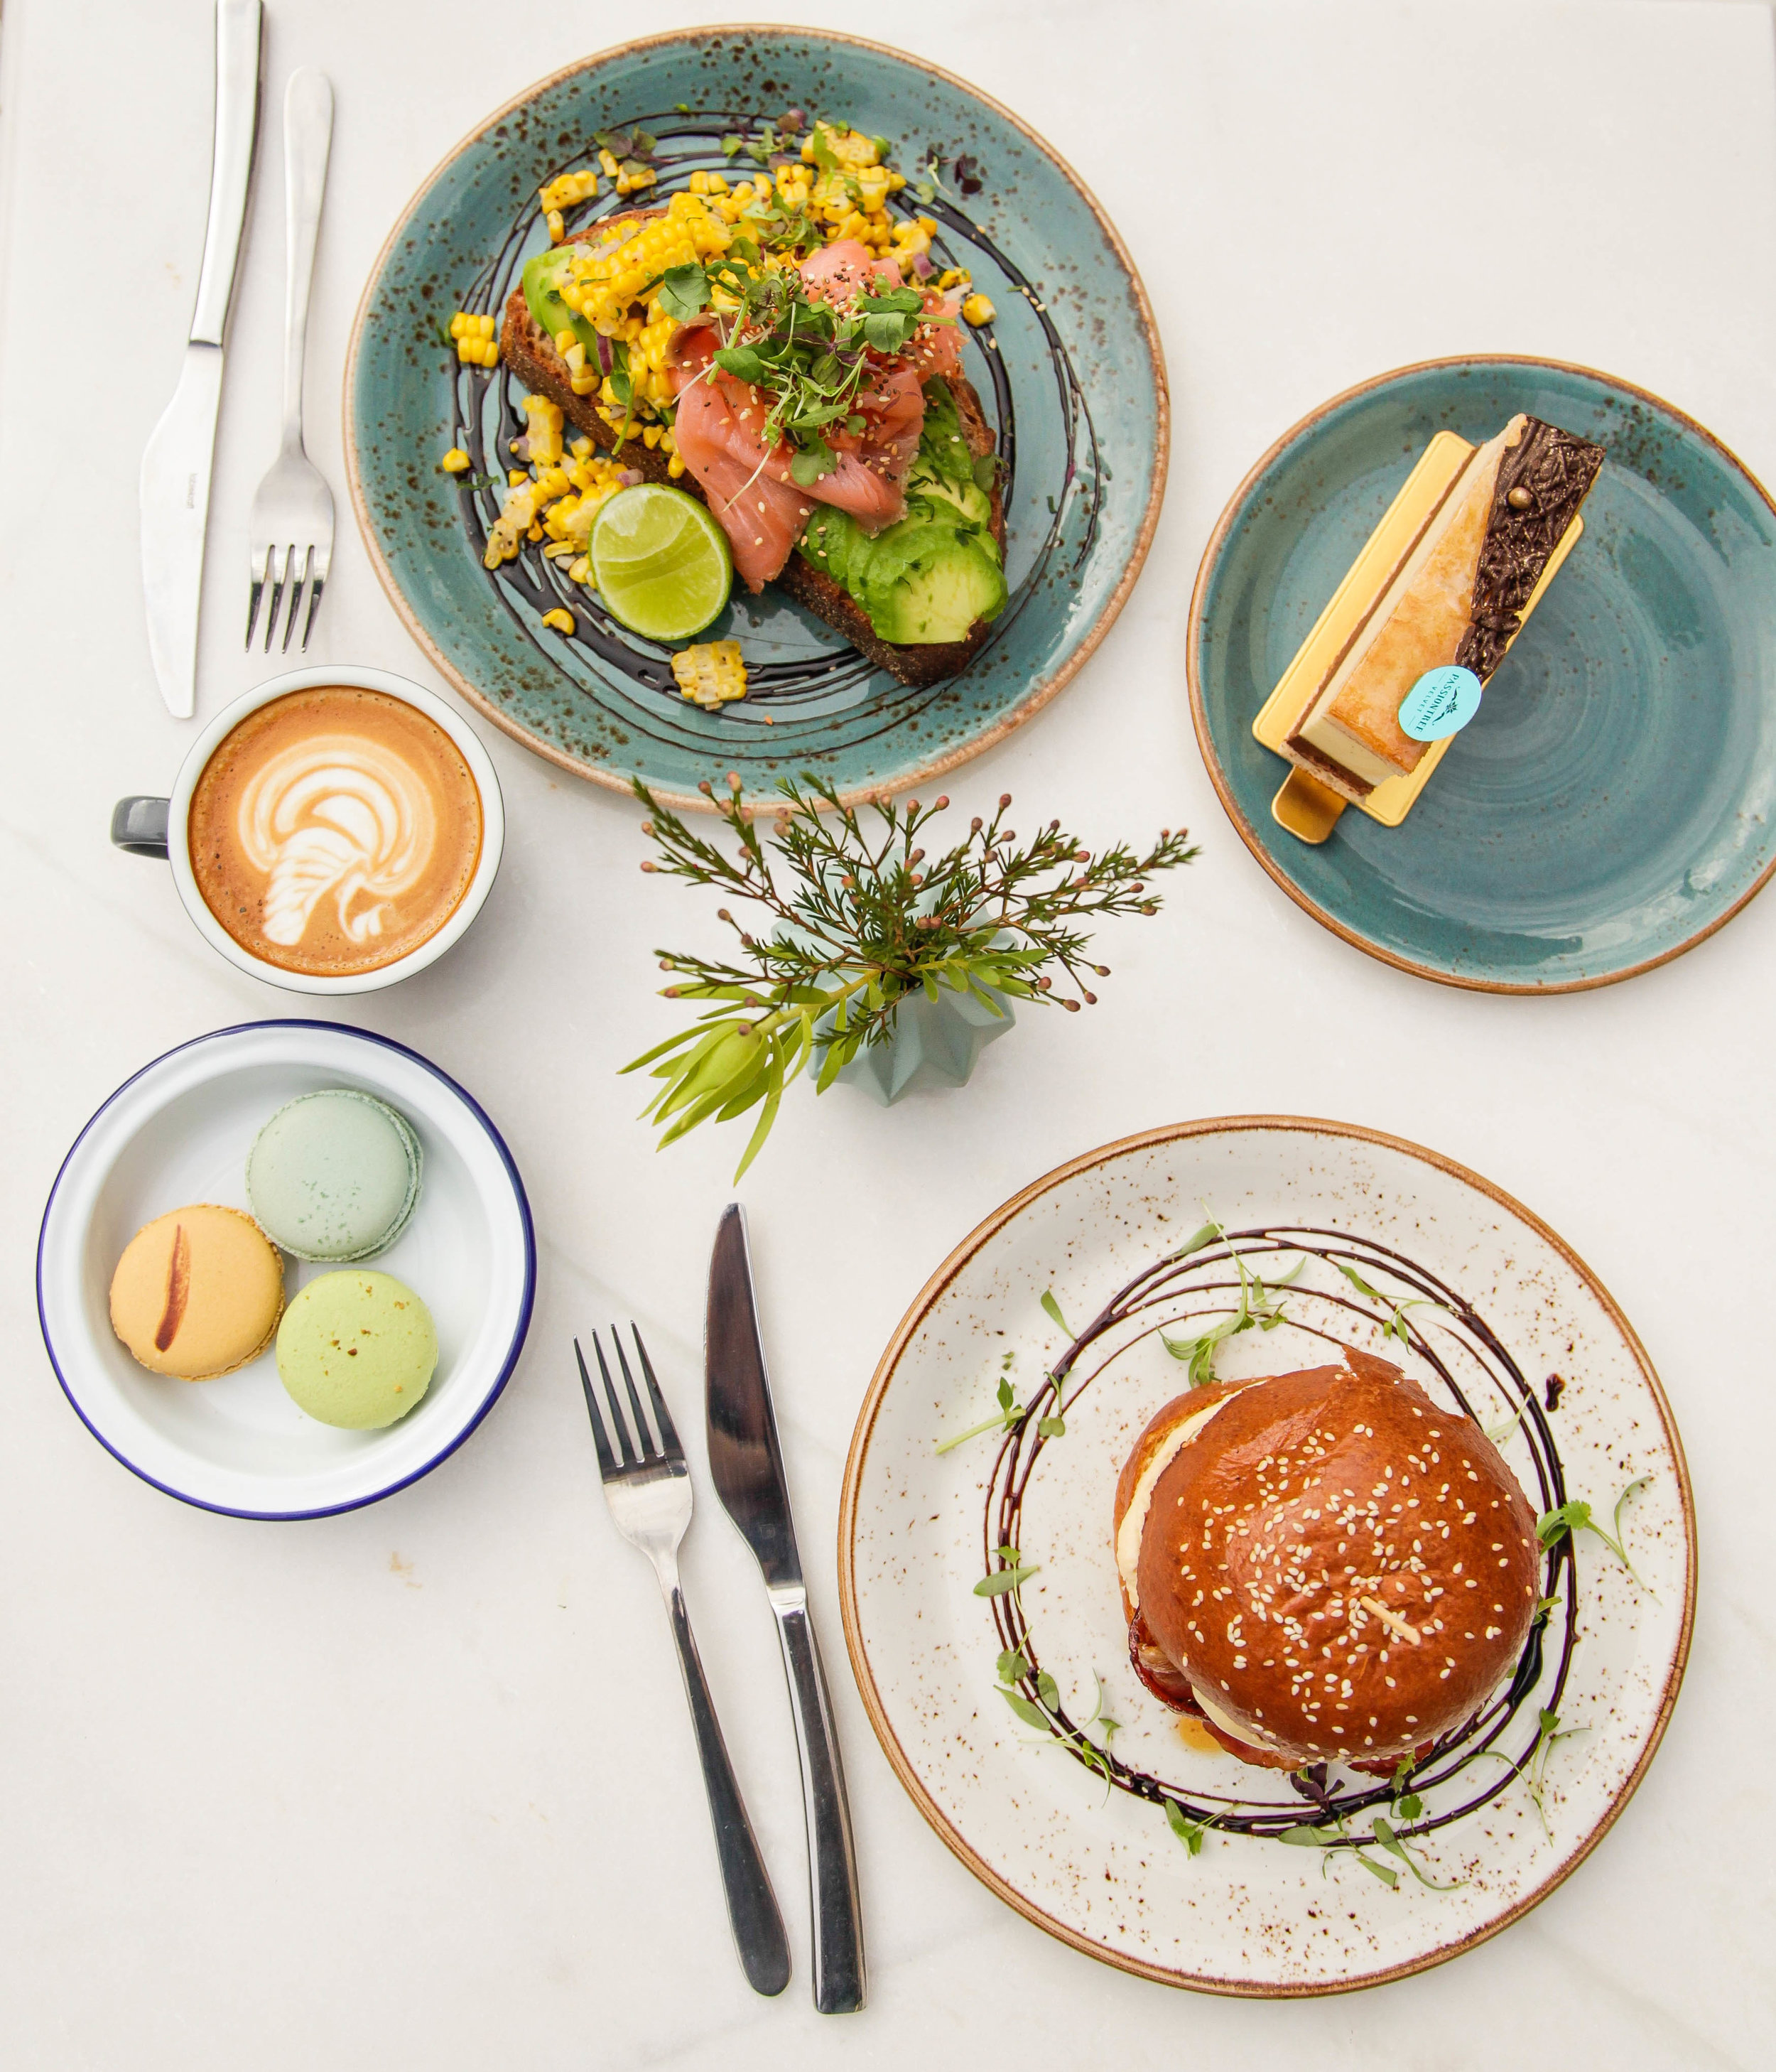 Full cafe / brunch range will be available here.